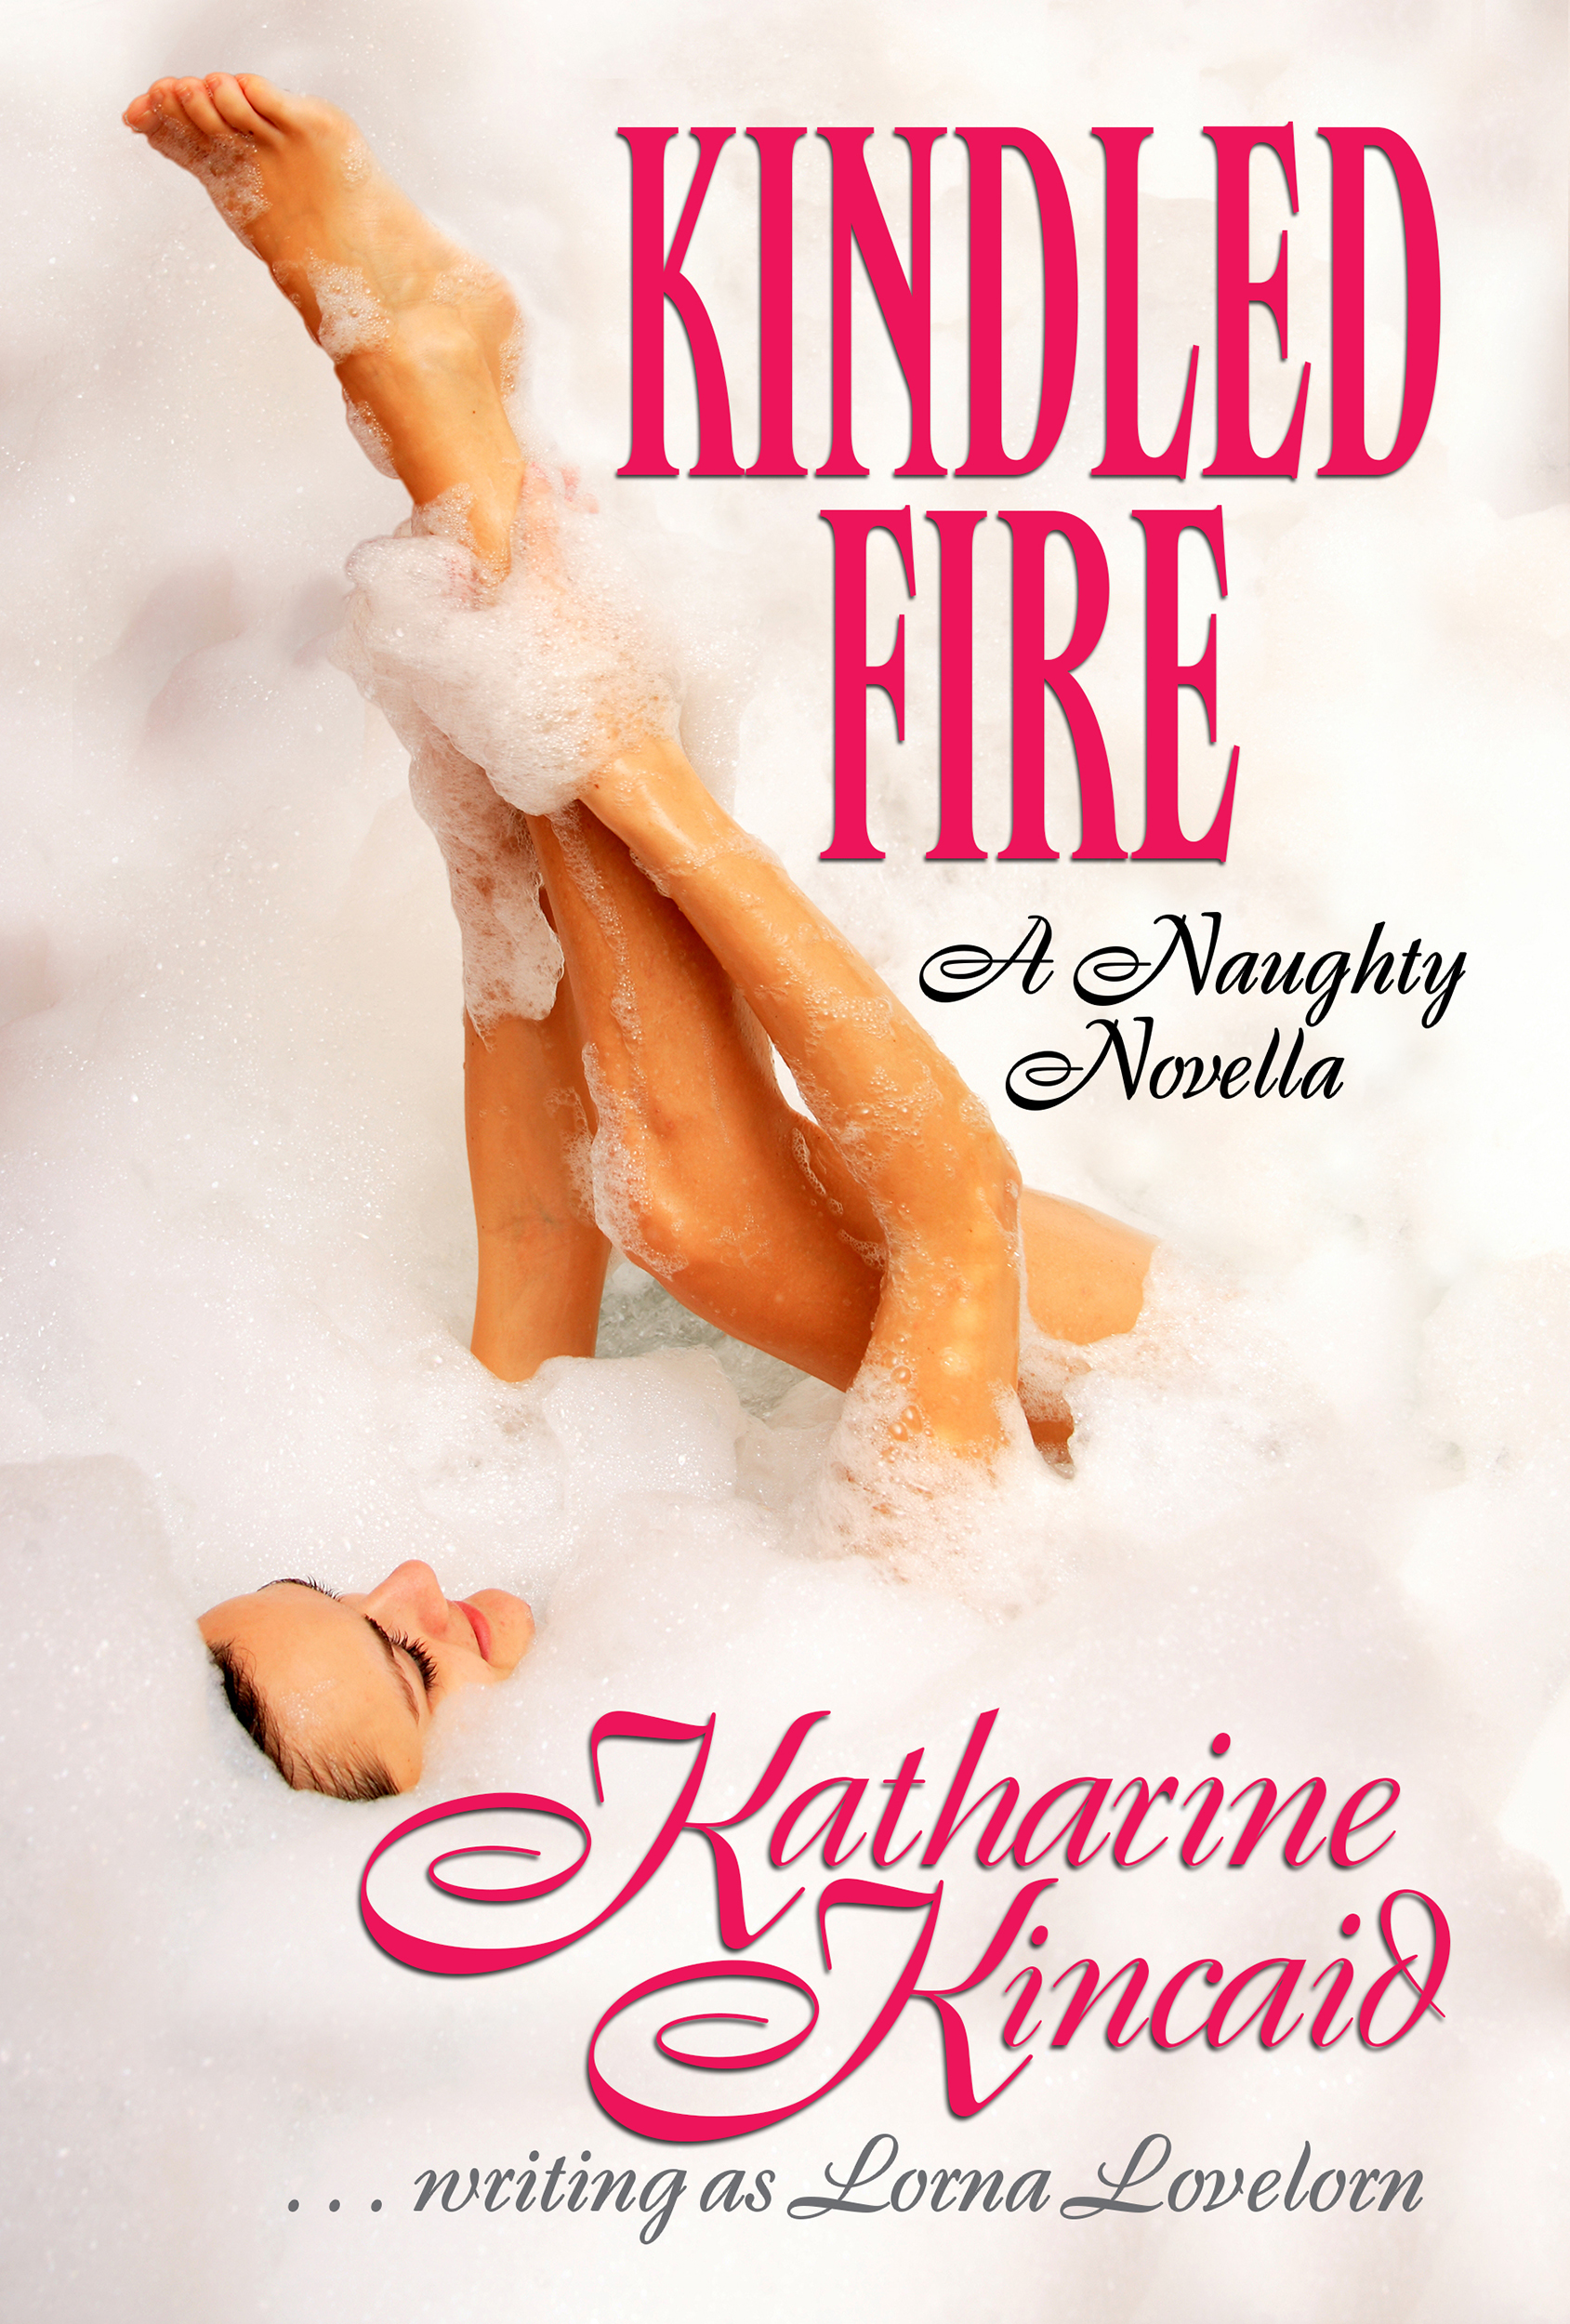 Kindled Fire: A Naughty Novella